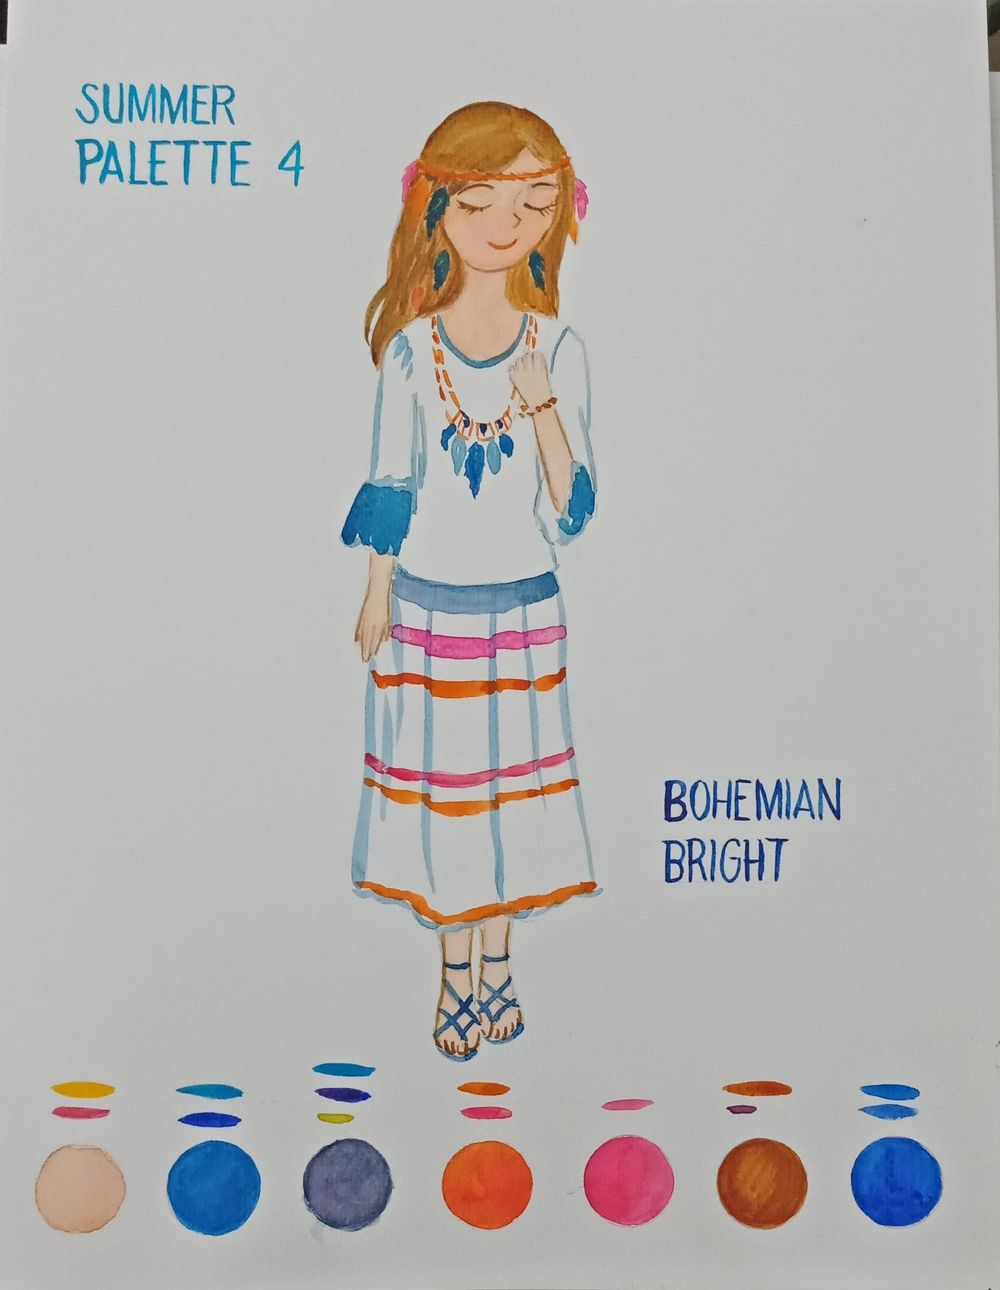 BOHEMIAN BRIGHT - image 2 - student project